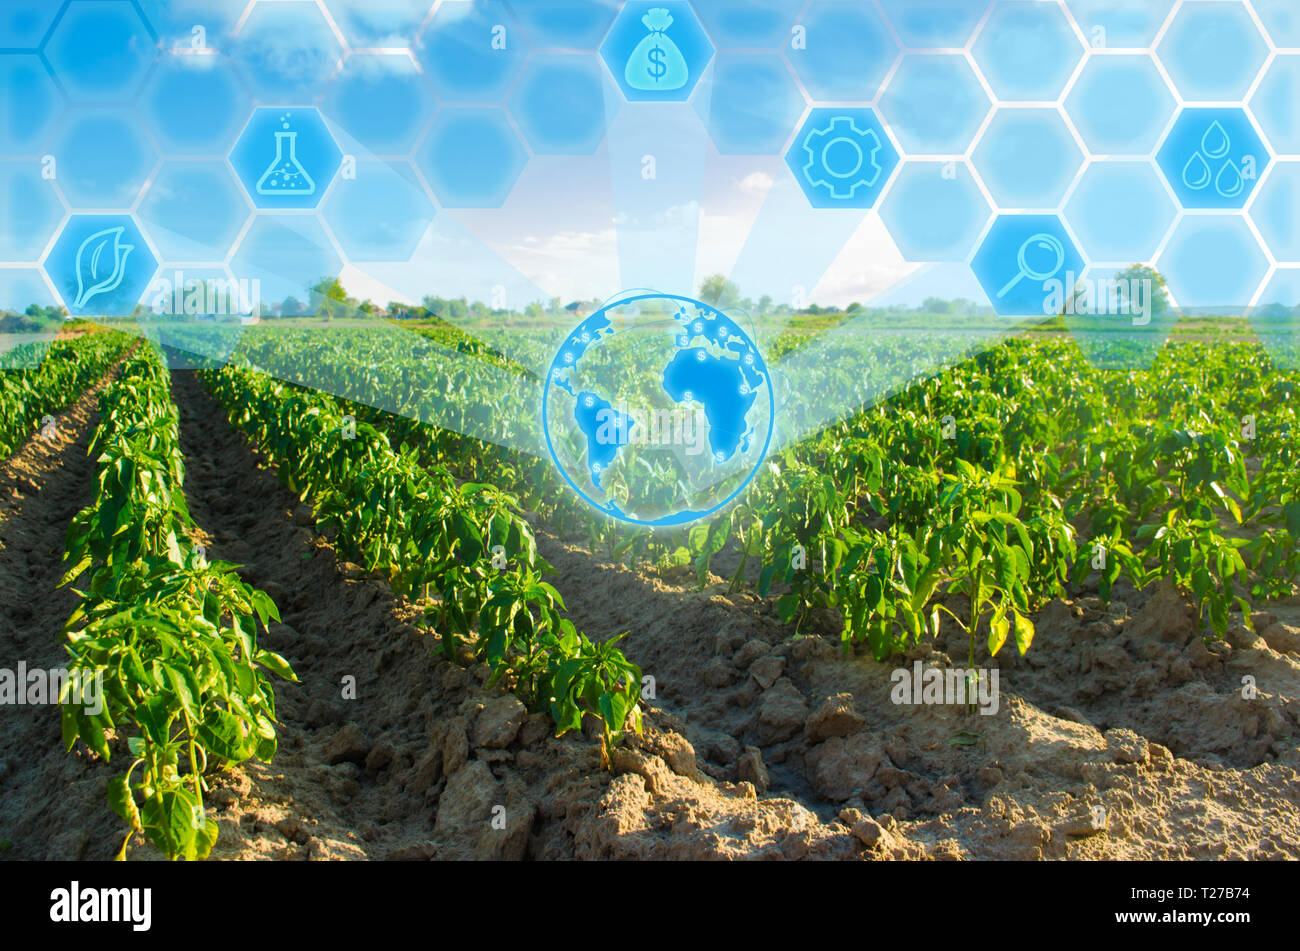 vegetable rows of pepper grow in the field. farming, agriculture. Landscape with agricultural land. Innovations in agriculture. High technology and re - Stock Image